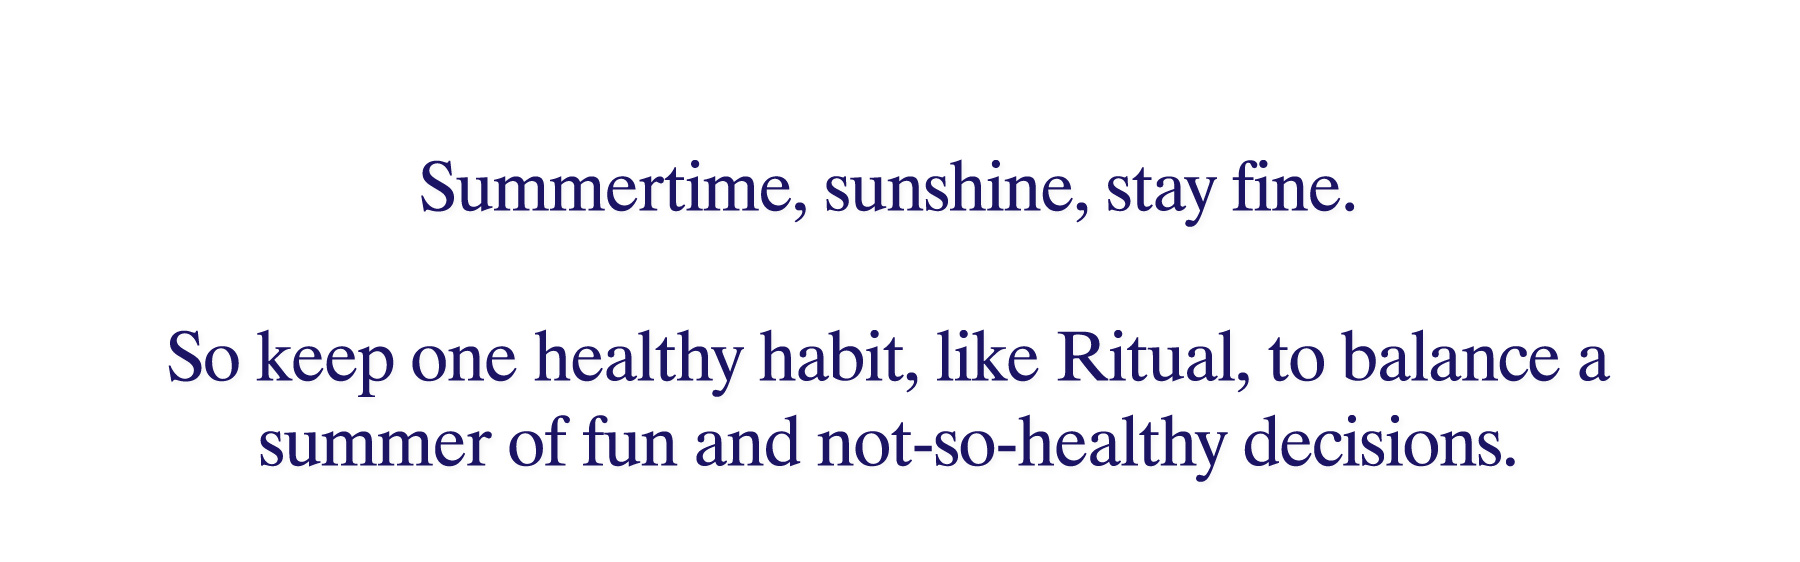 Summertime, sunshine, stay fine. So keep one healthy habit, like Ritual, to balance a summer of fun and not-so-healthy decisions.